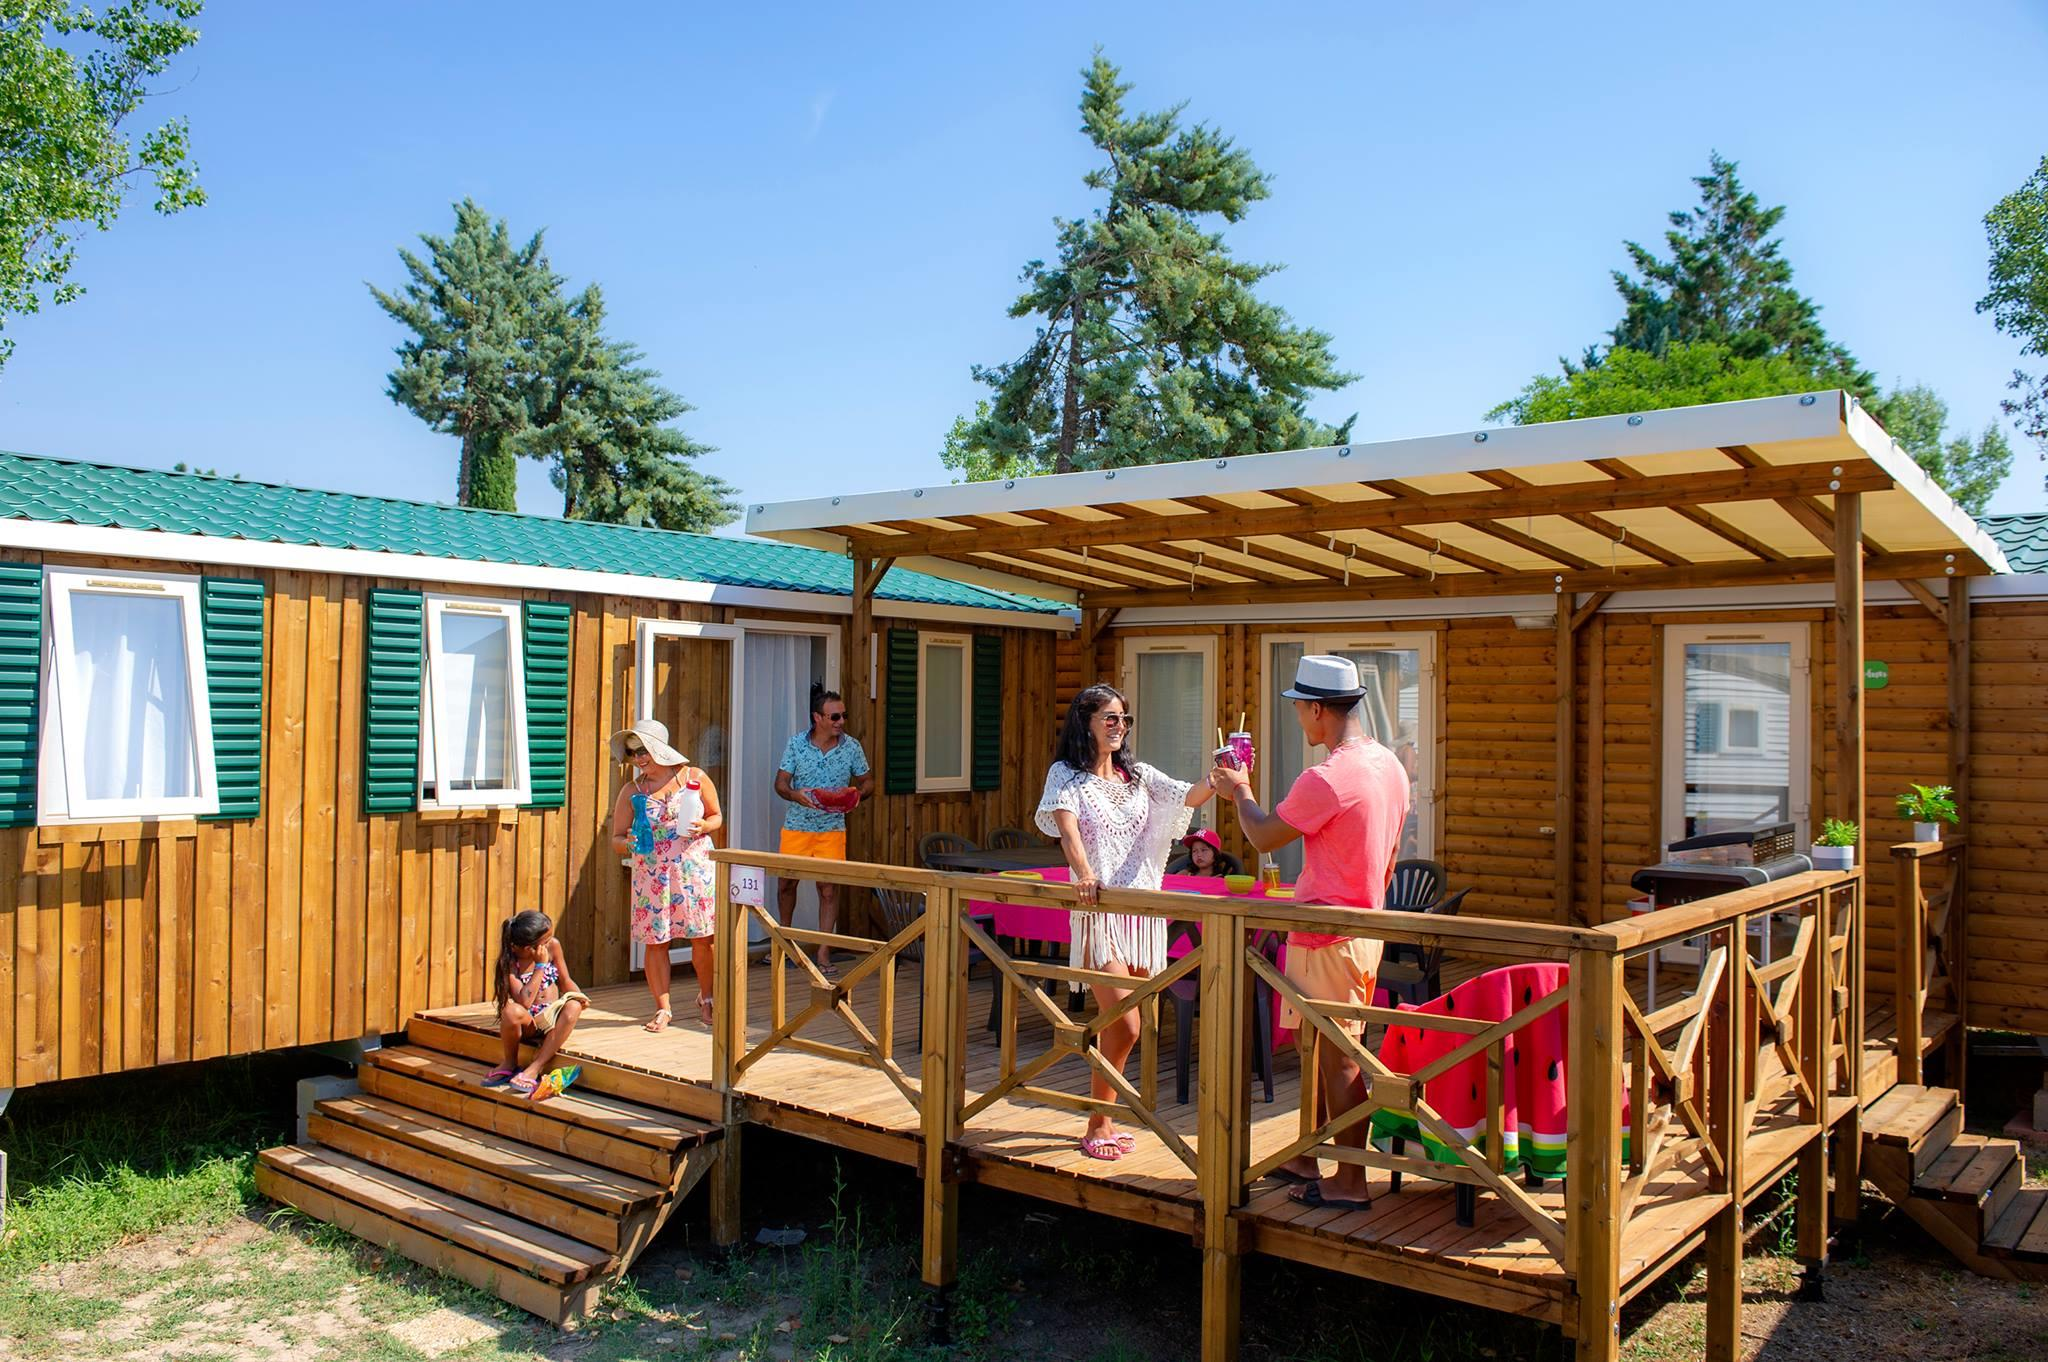 Capfun Camping Mirabelle, Volstroff, Moselle